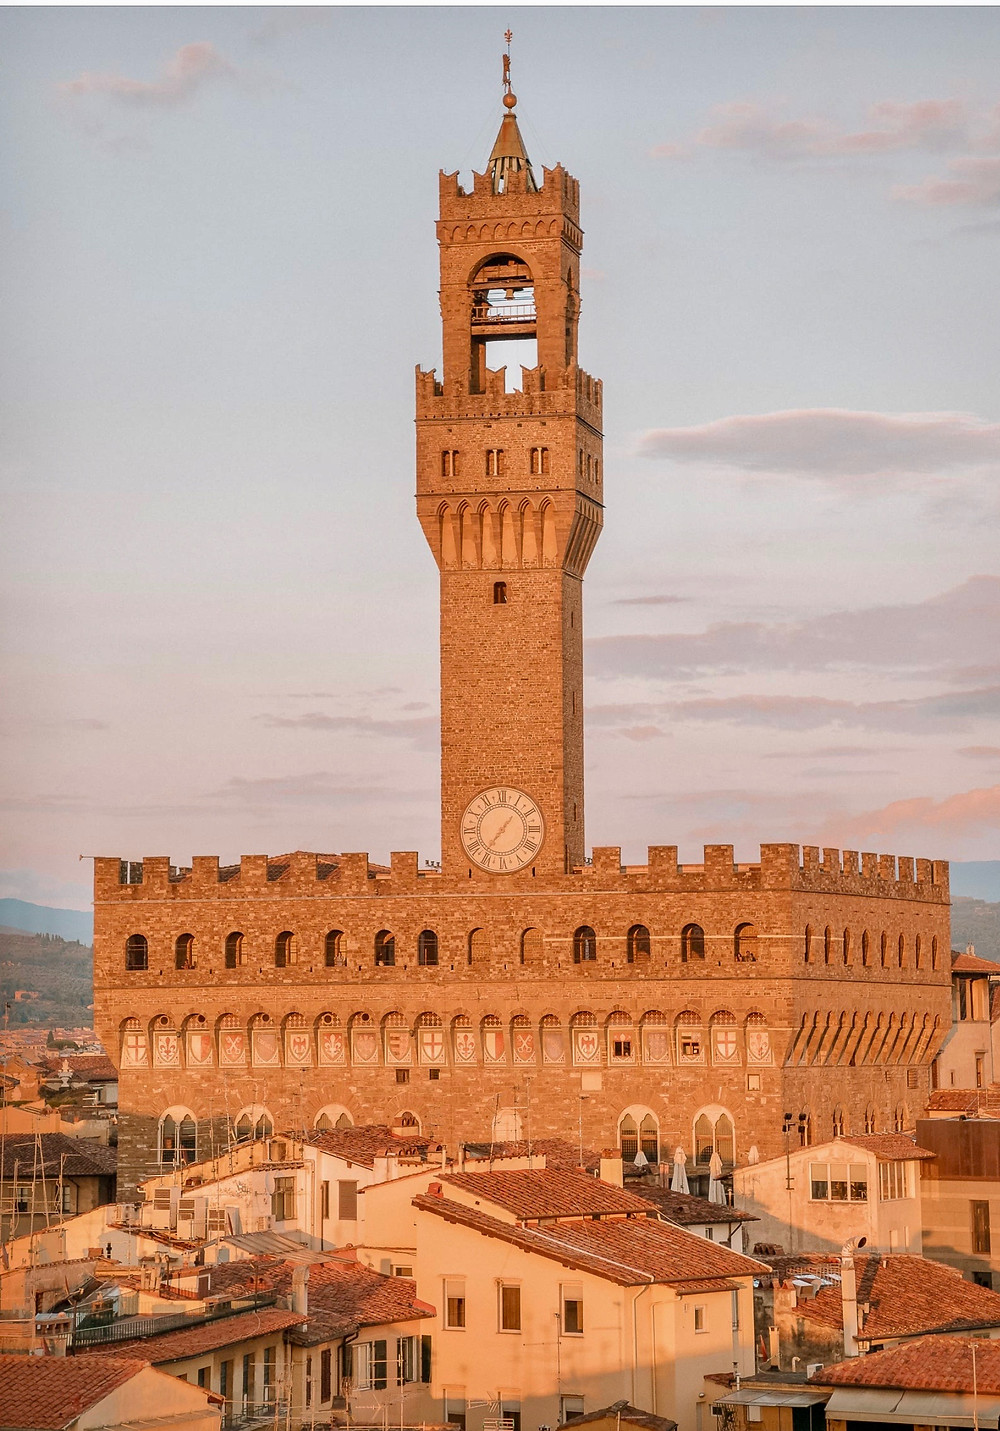 Palazzo Vecchio and the Tower of Arnolfo